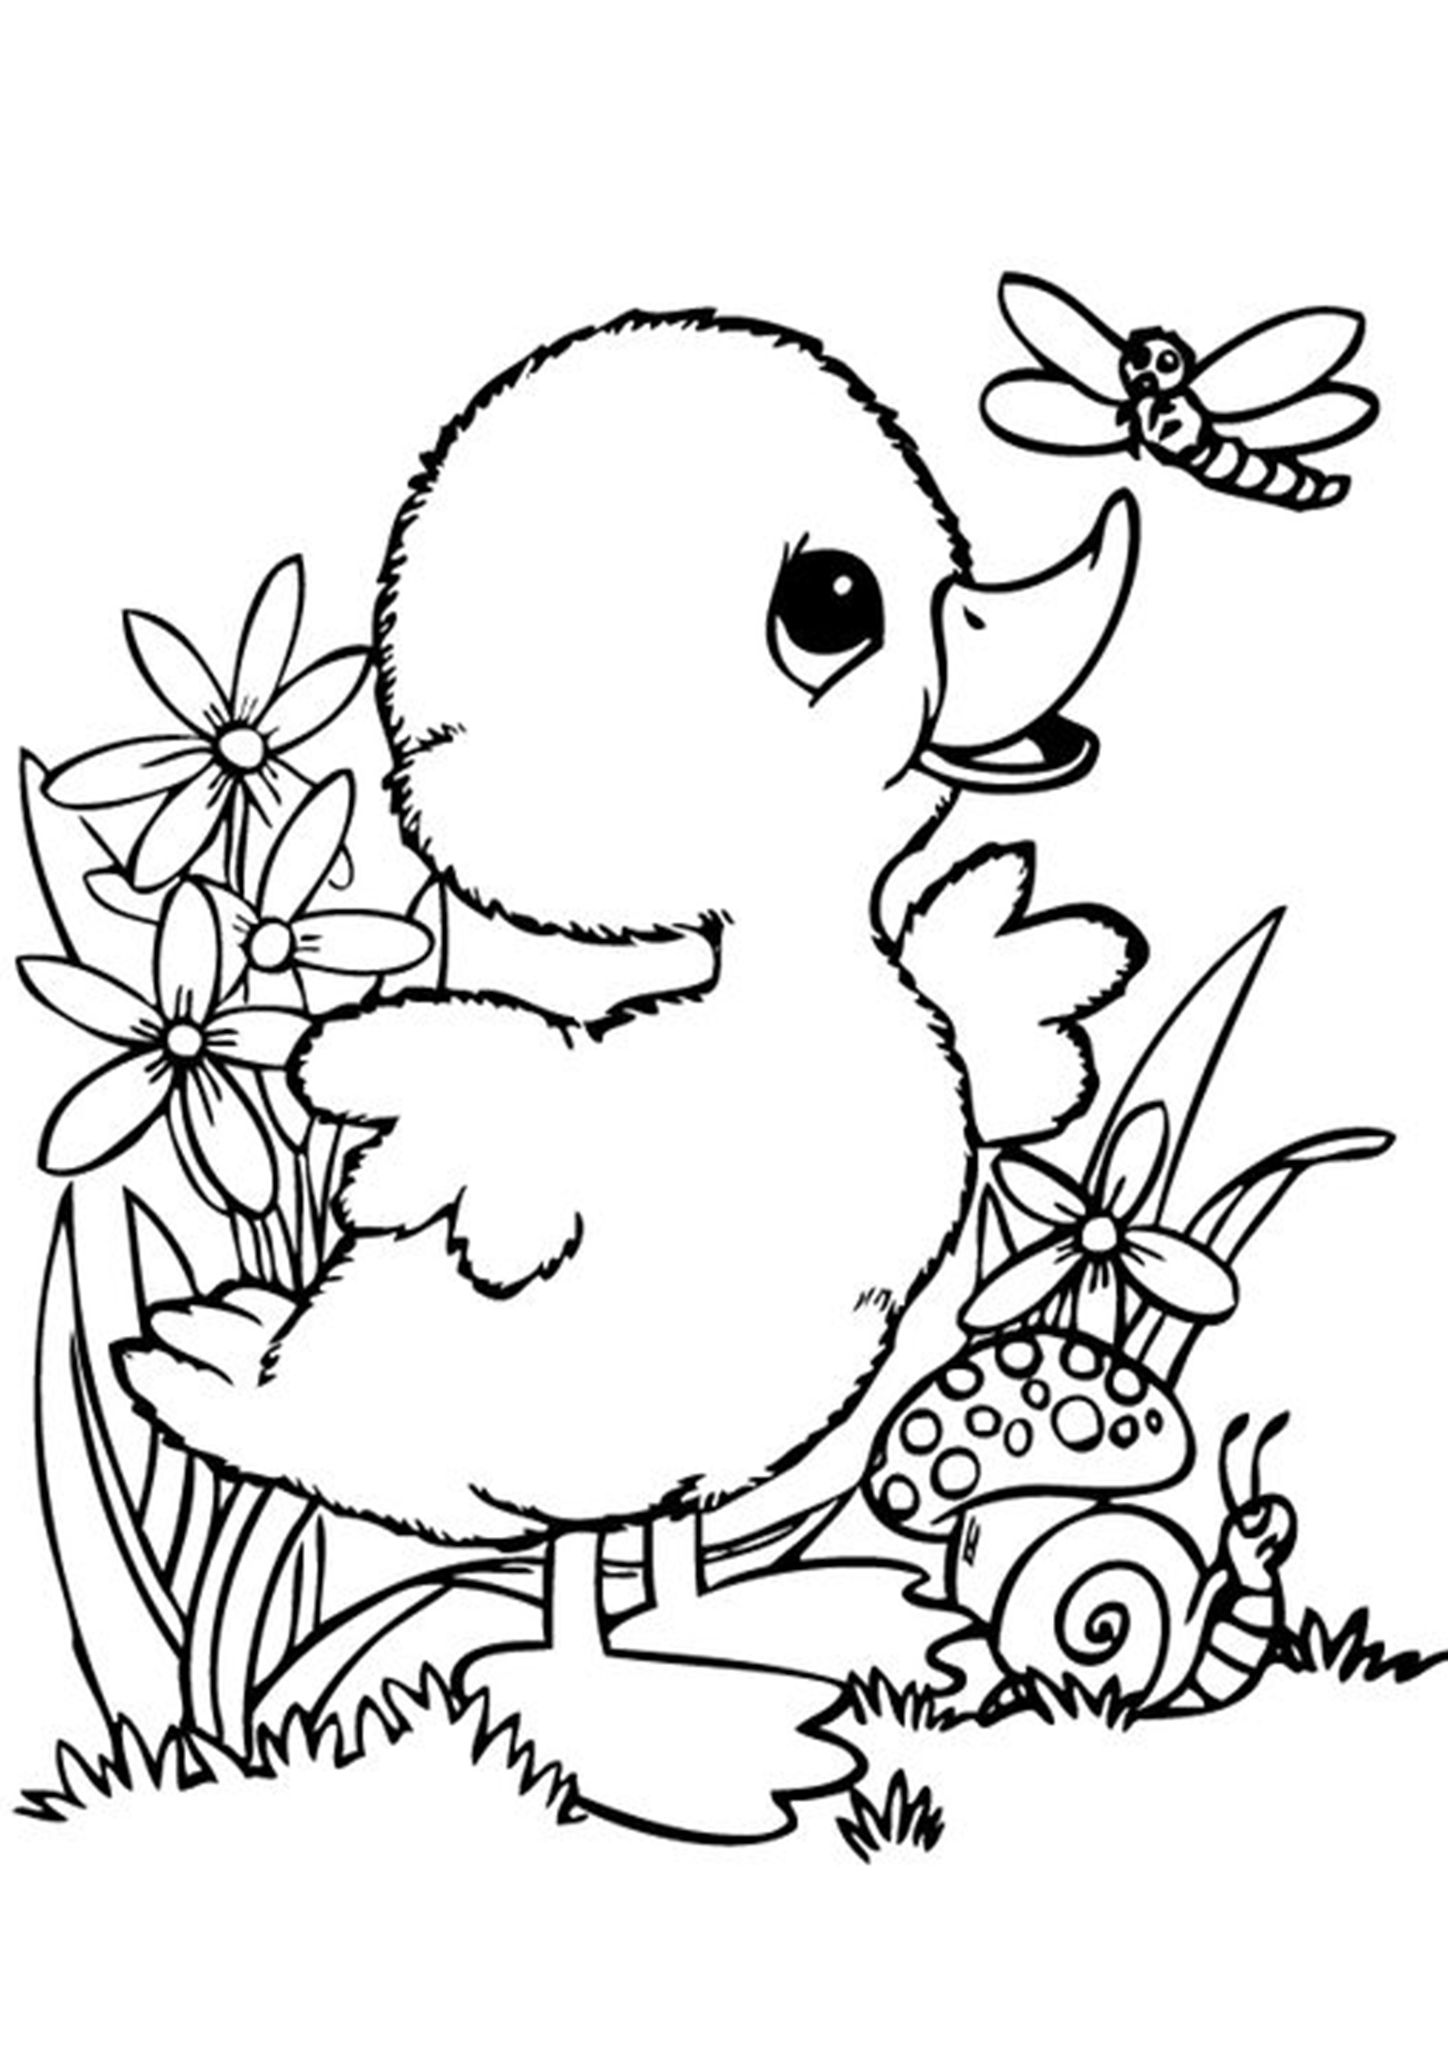 Free Easy To Print Duck Coloring Pages Bird Coloring Pages Animal Coloring Pages Unicorn Coloring Pages